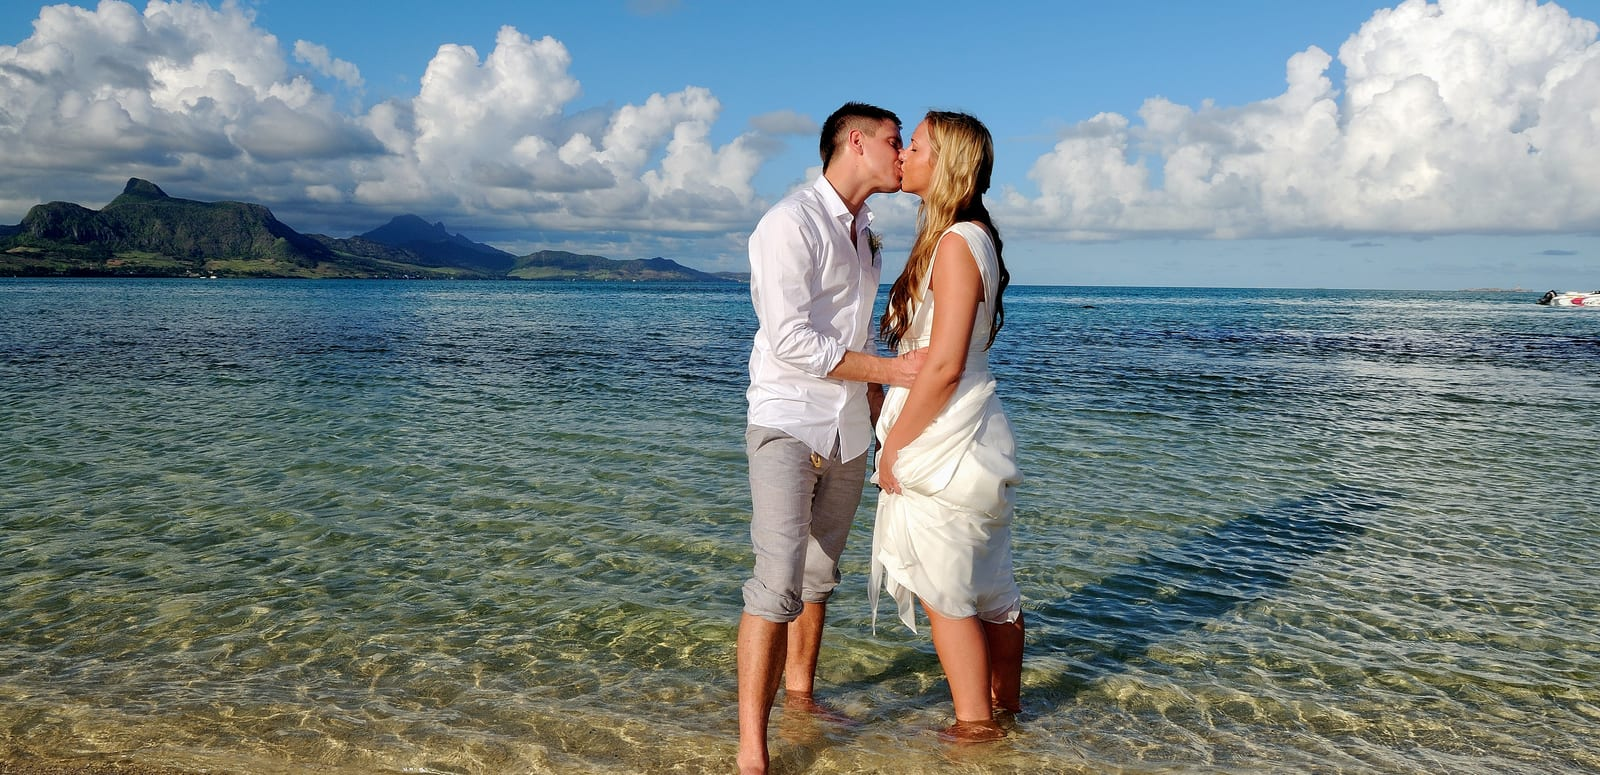 7. Mauritius Romantic Honeymoon Place In The World